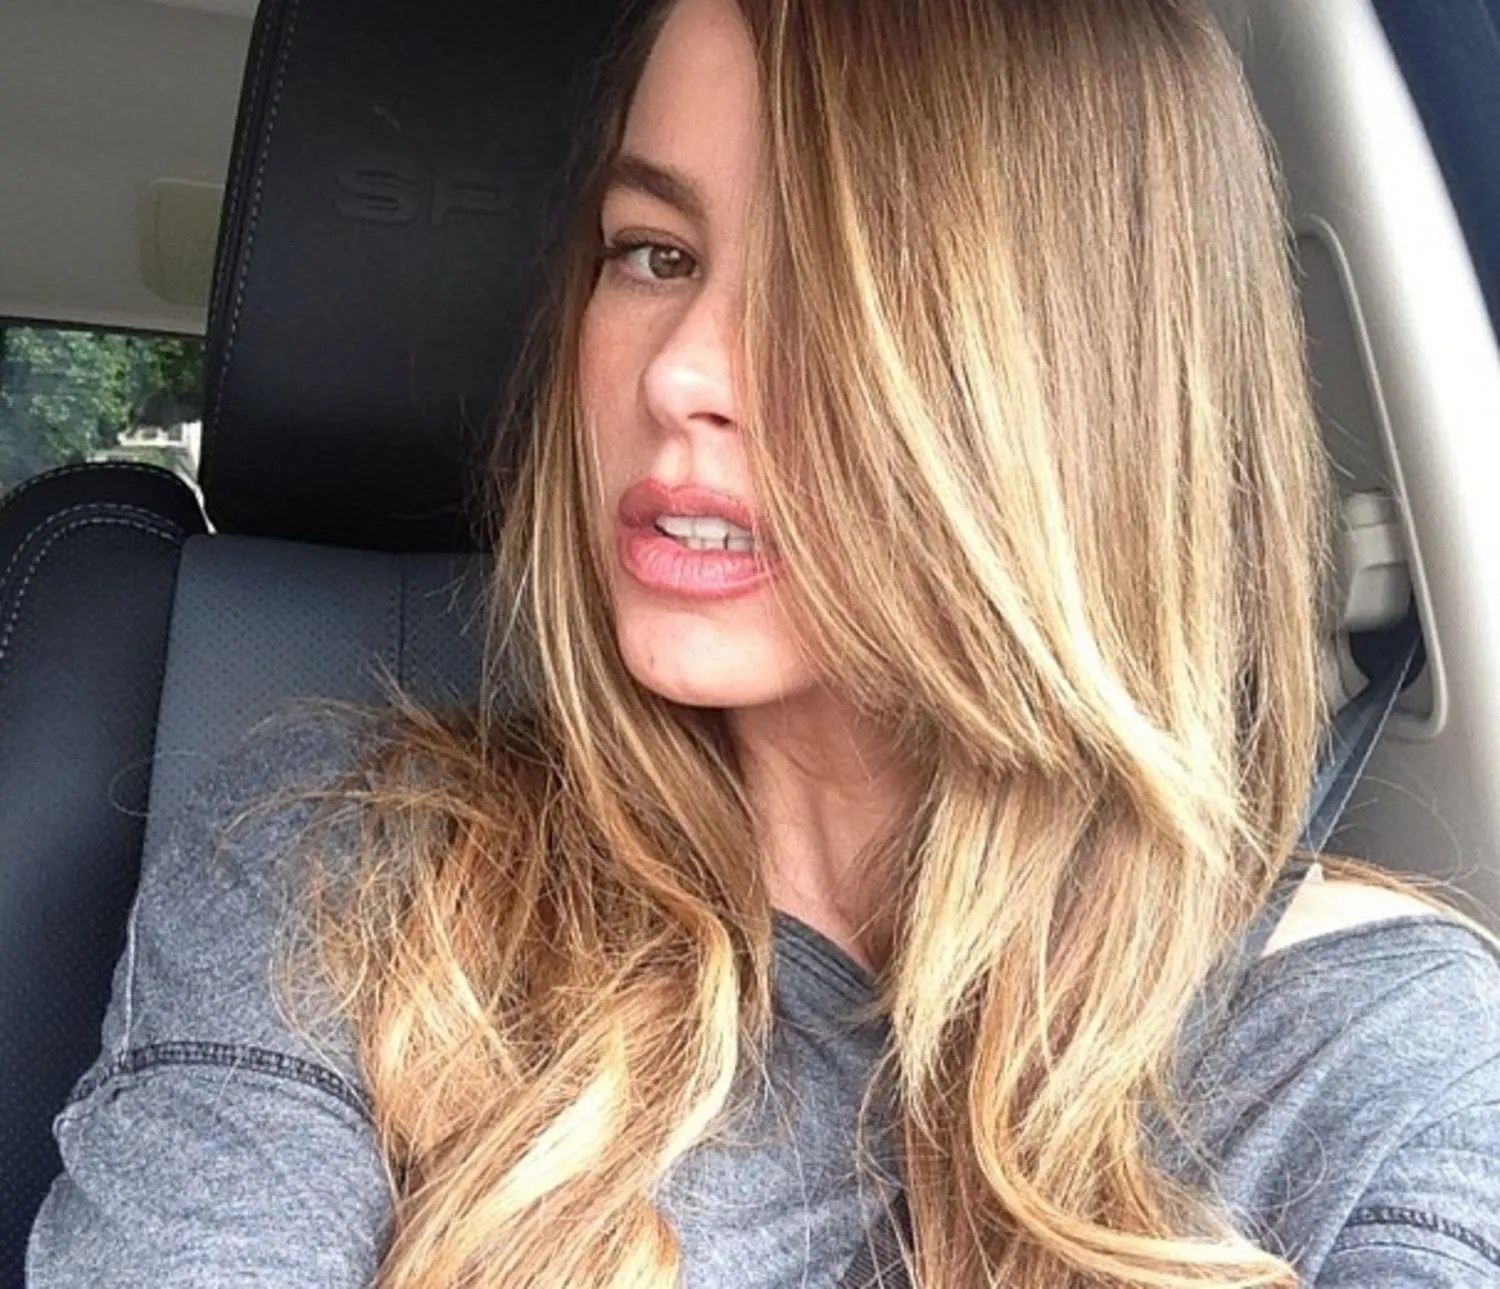 Sofia Vergara Hair Color Sofia Vergara Just Dyed Her Hair Blond And It S Pretty Hot Should